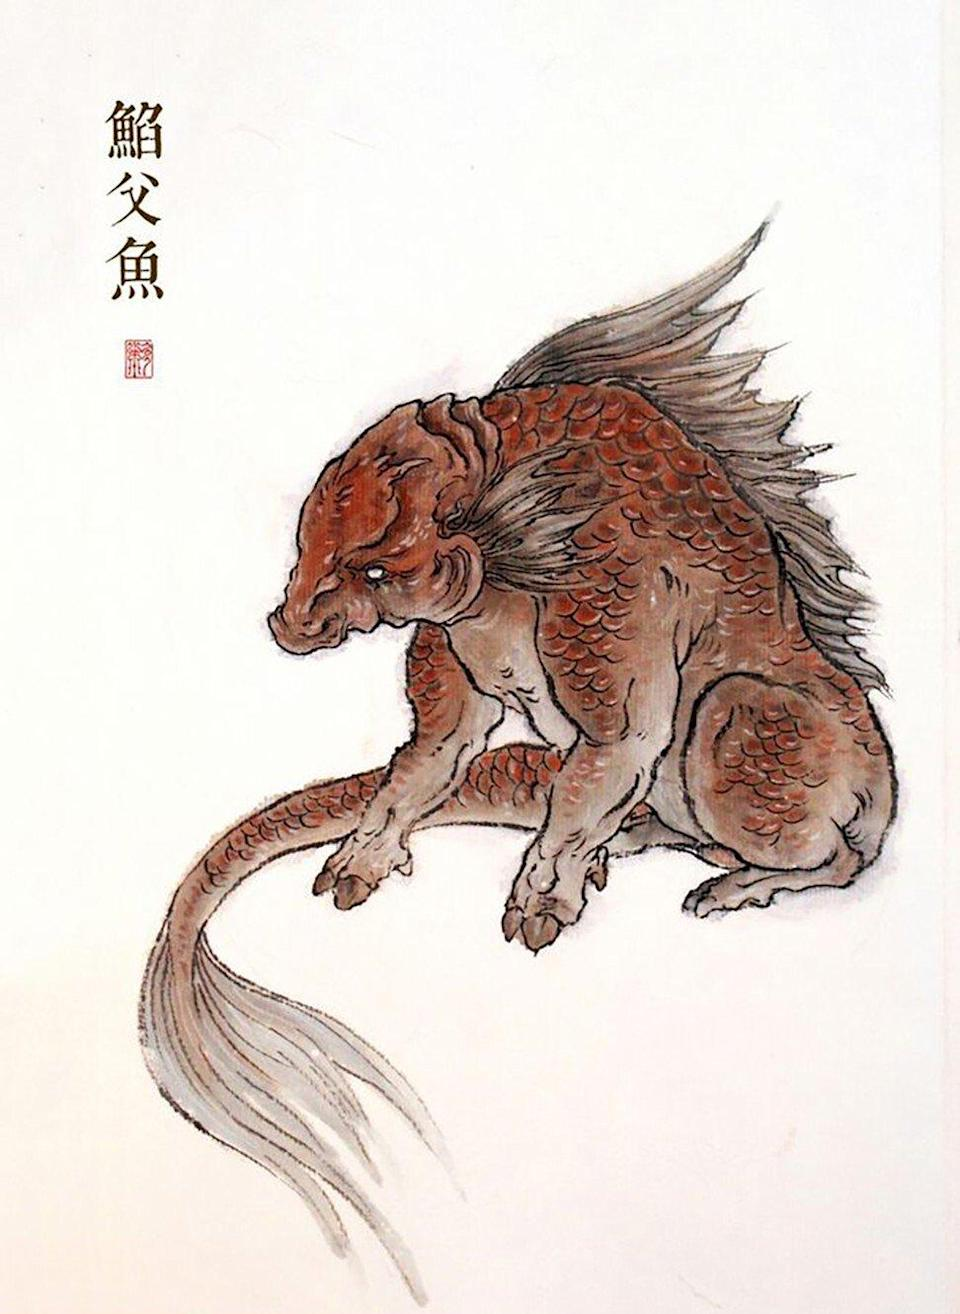 The mythical Xian Fu Yu creature has the head of a fish and the body of a pig. Photo: Handout